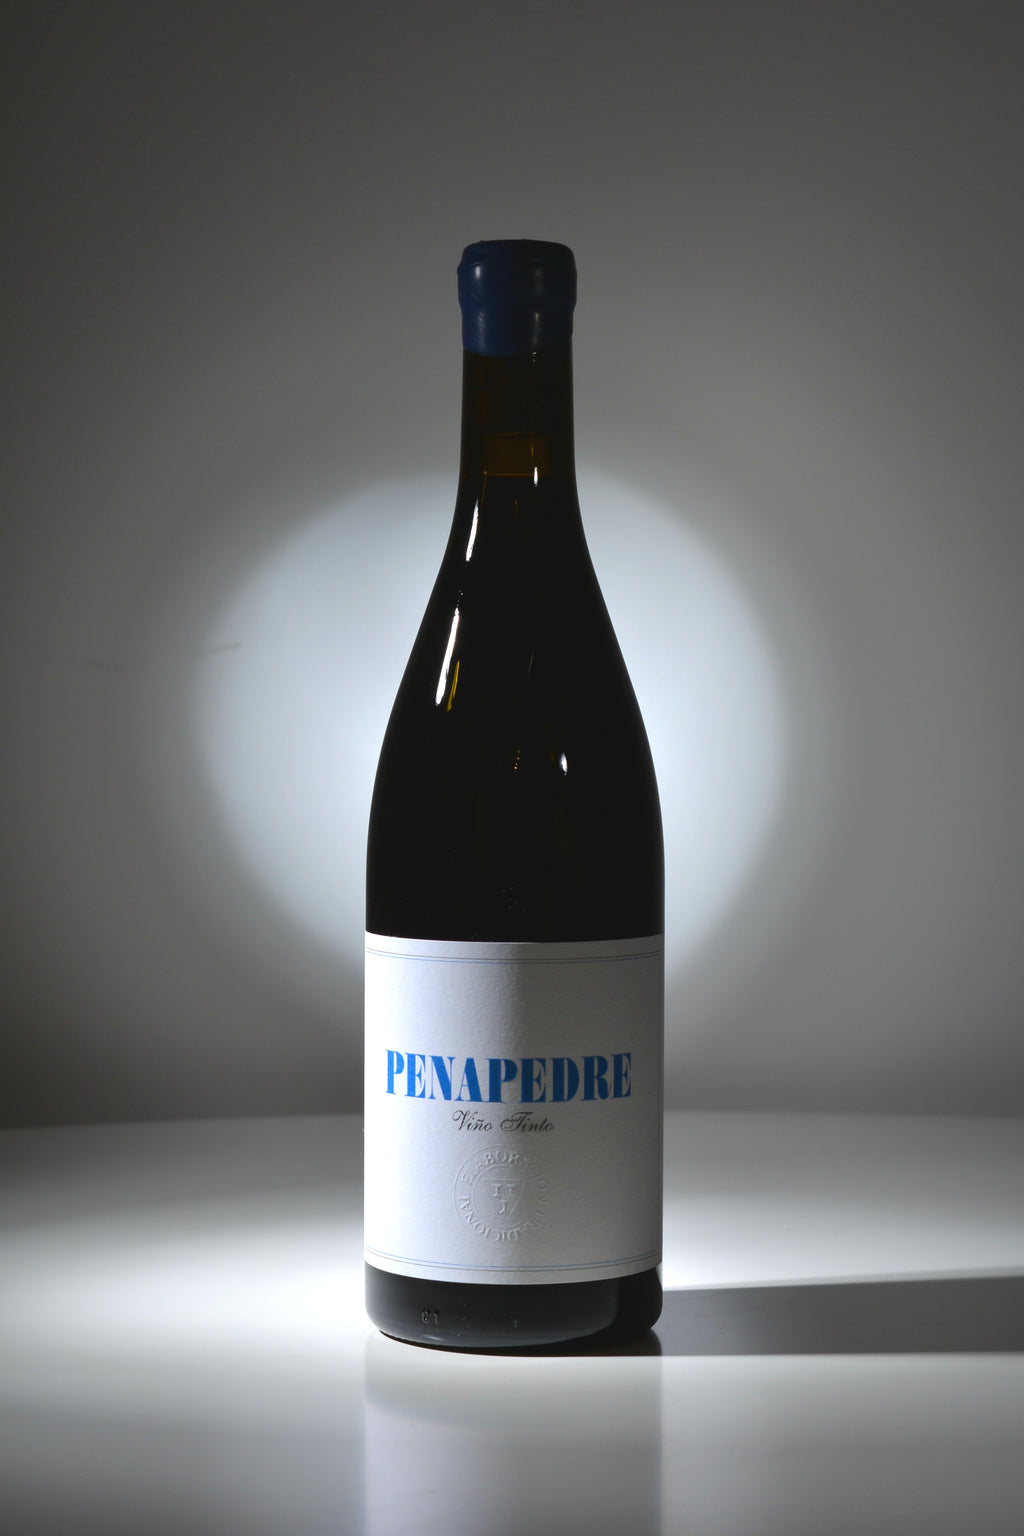 Penapedre 2016 - The Royal Bottle